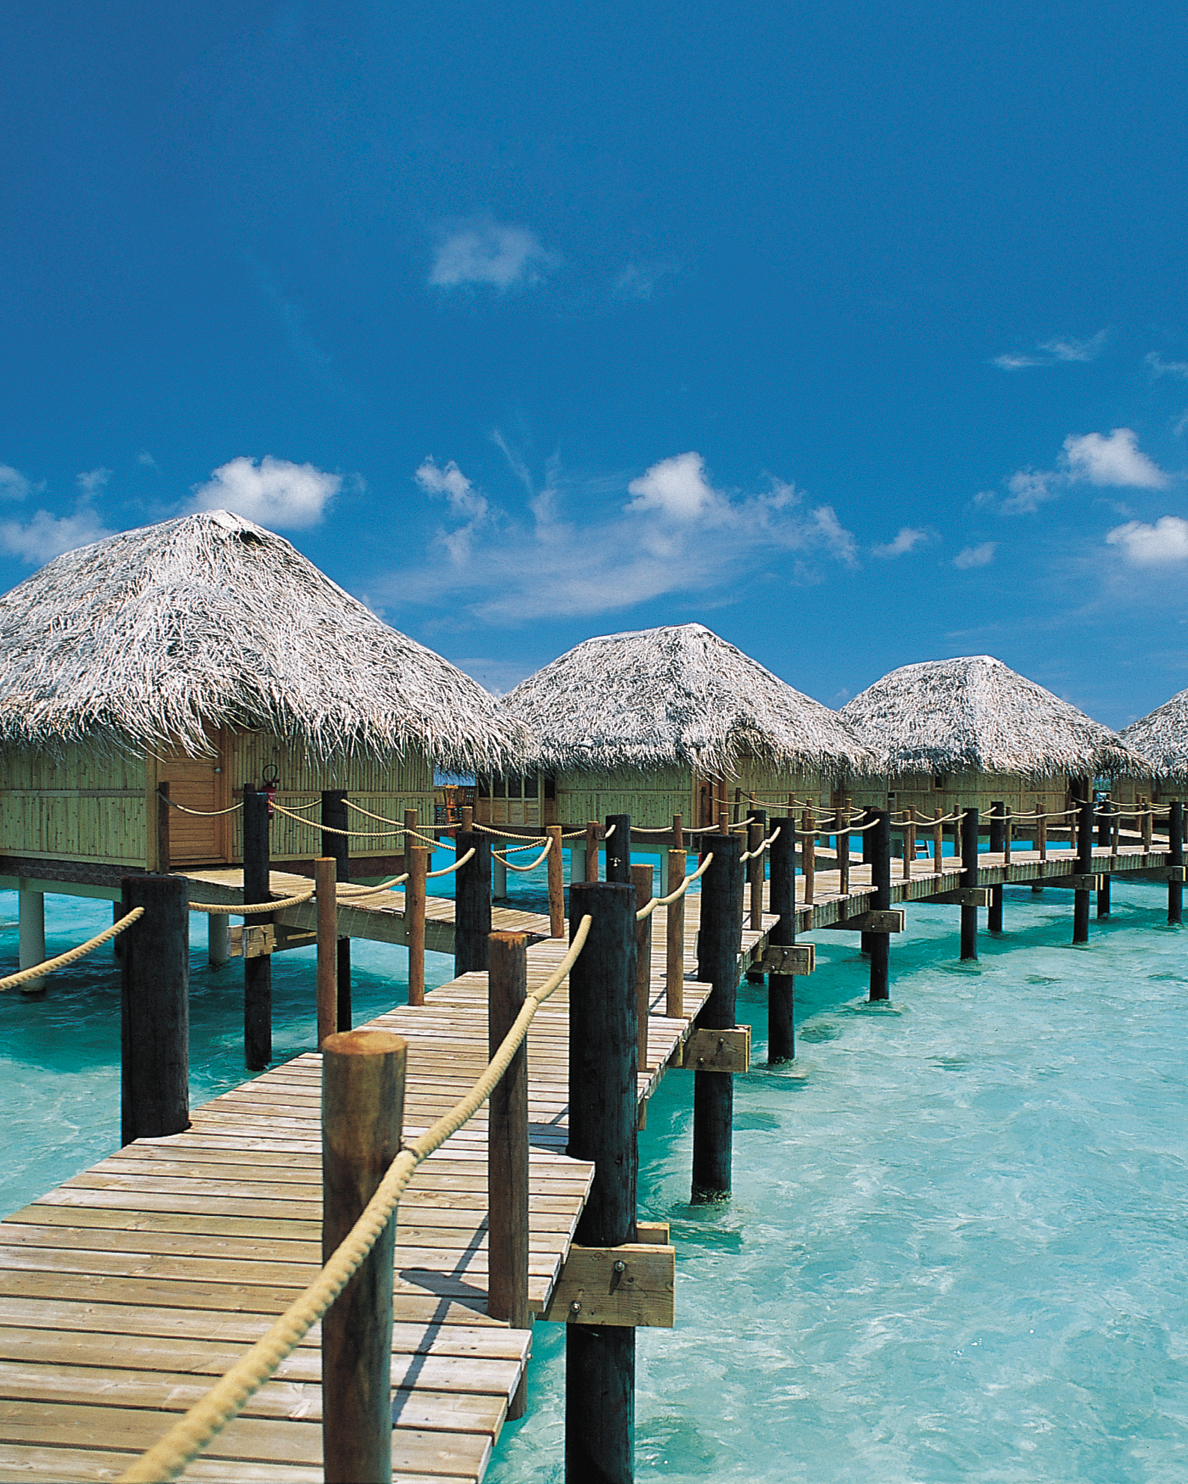 177-hiresolution-xmh-02-overwater-bungalow-hd-mwds108872.jpg